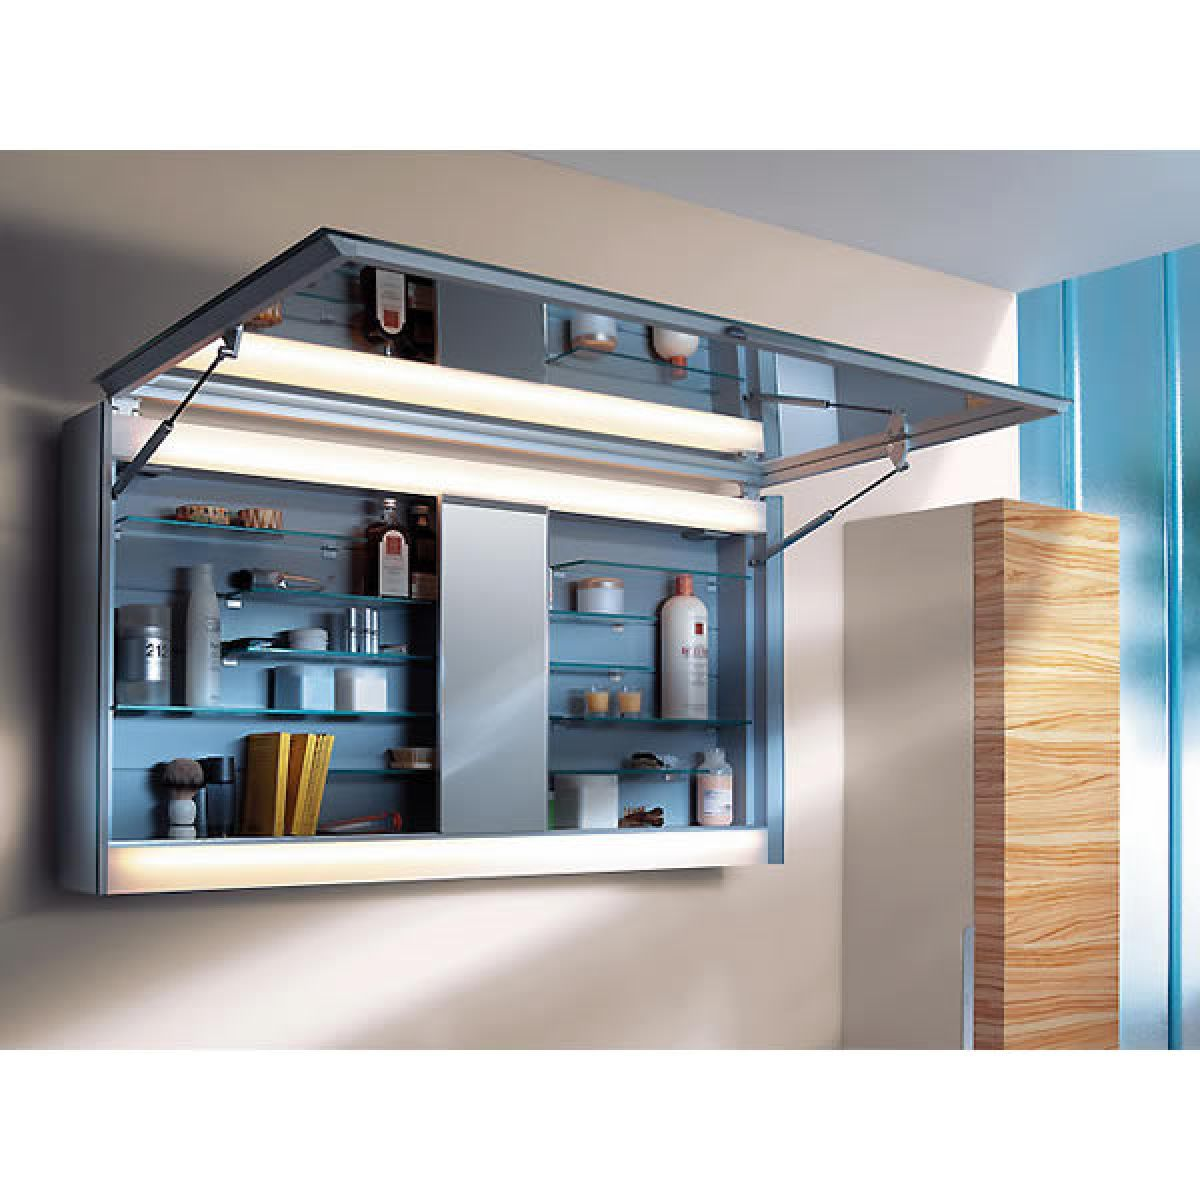 keuco bathroom cabinets keuco edition 300 mirror cabinet 950mm uk bathrooms 13299